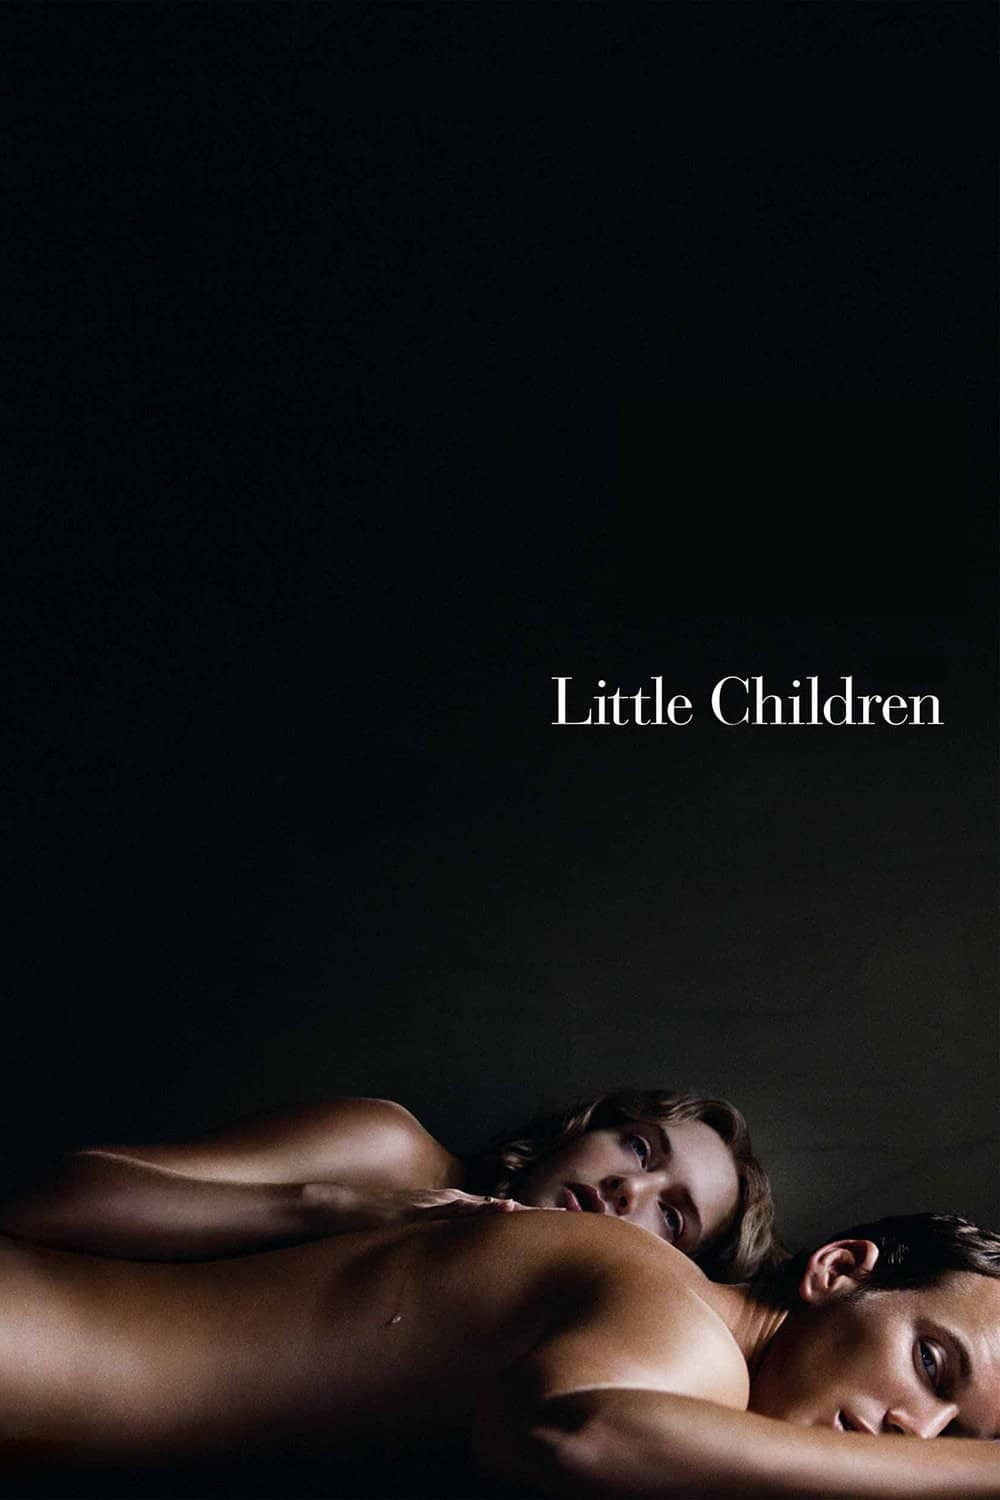 Little Children, 2006